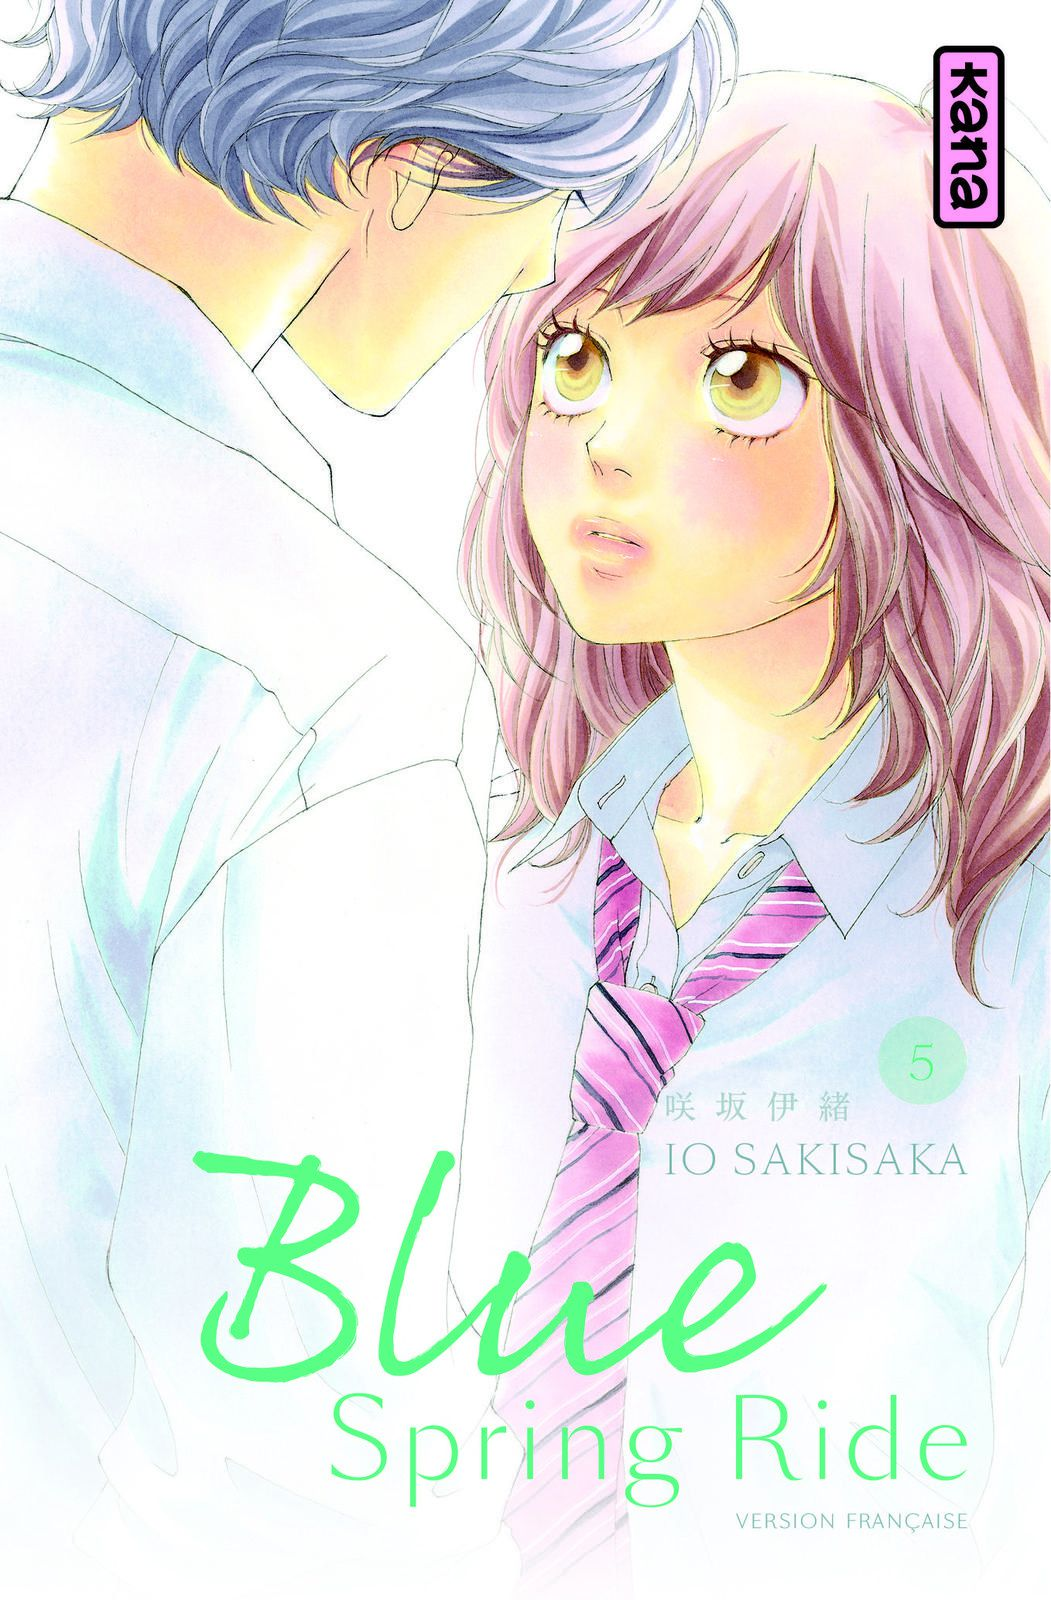 Bakuman tome 18, Blue spring ride tome 5 et Hell's Kitchen tome 5 chez Kana